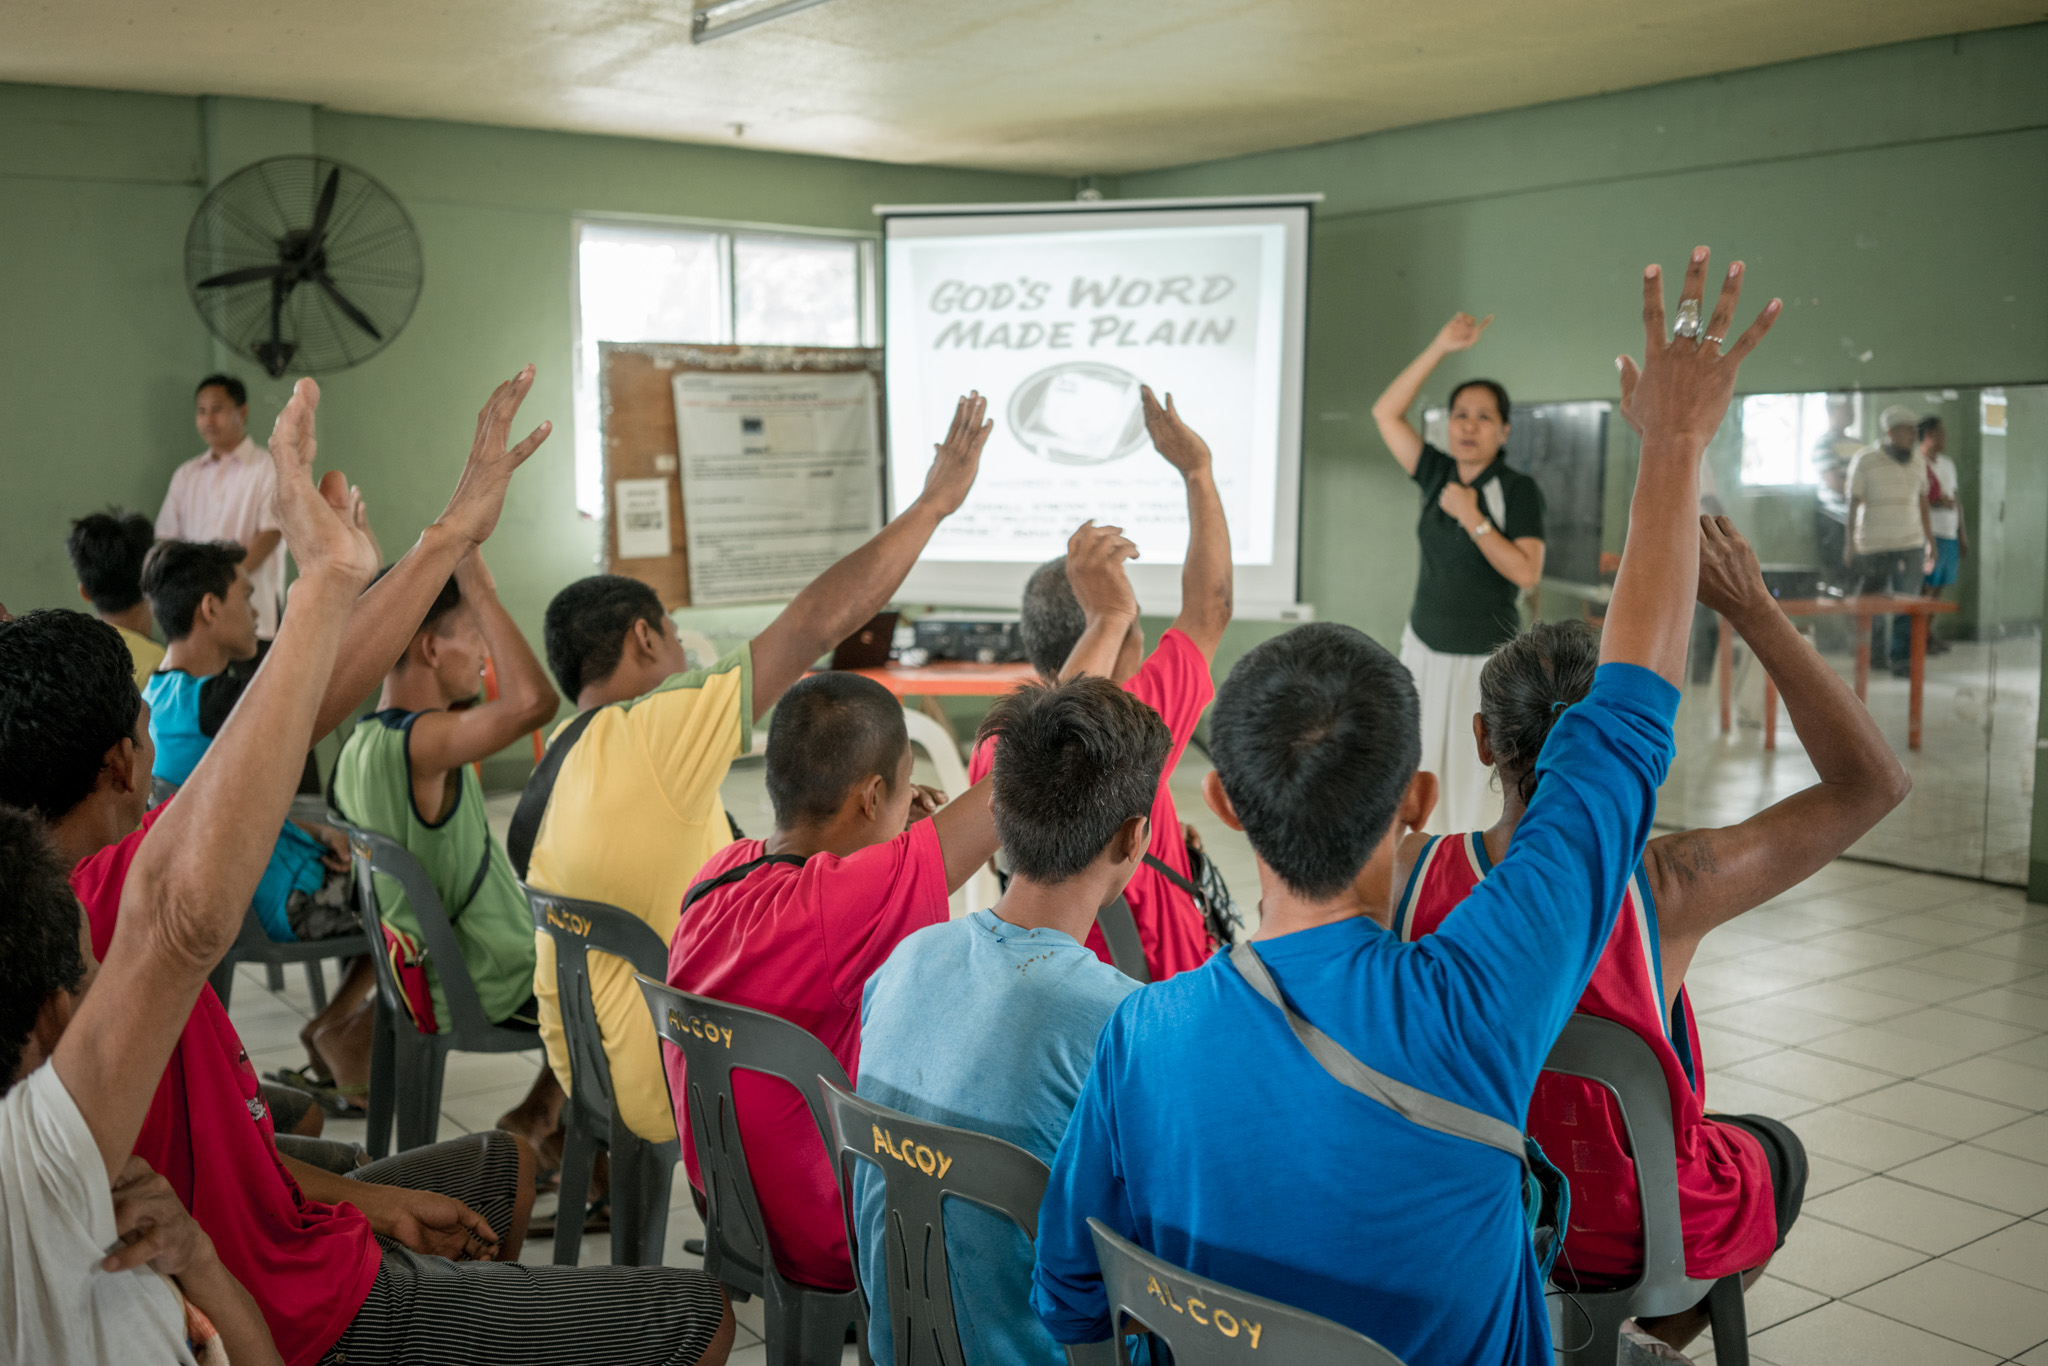 SESSION. Drug surrenders participate in a bible study session in Barangay Bagong Pag-Asa.